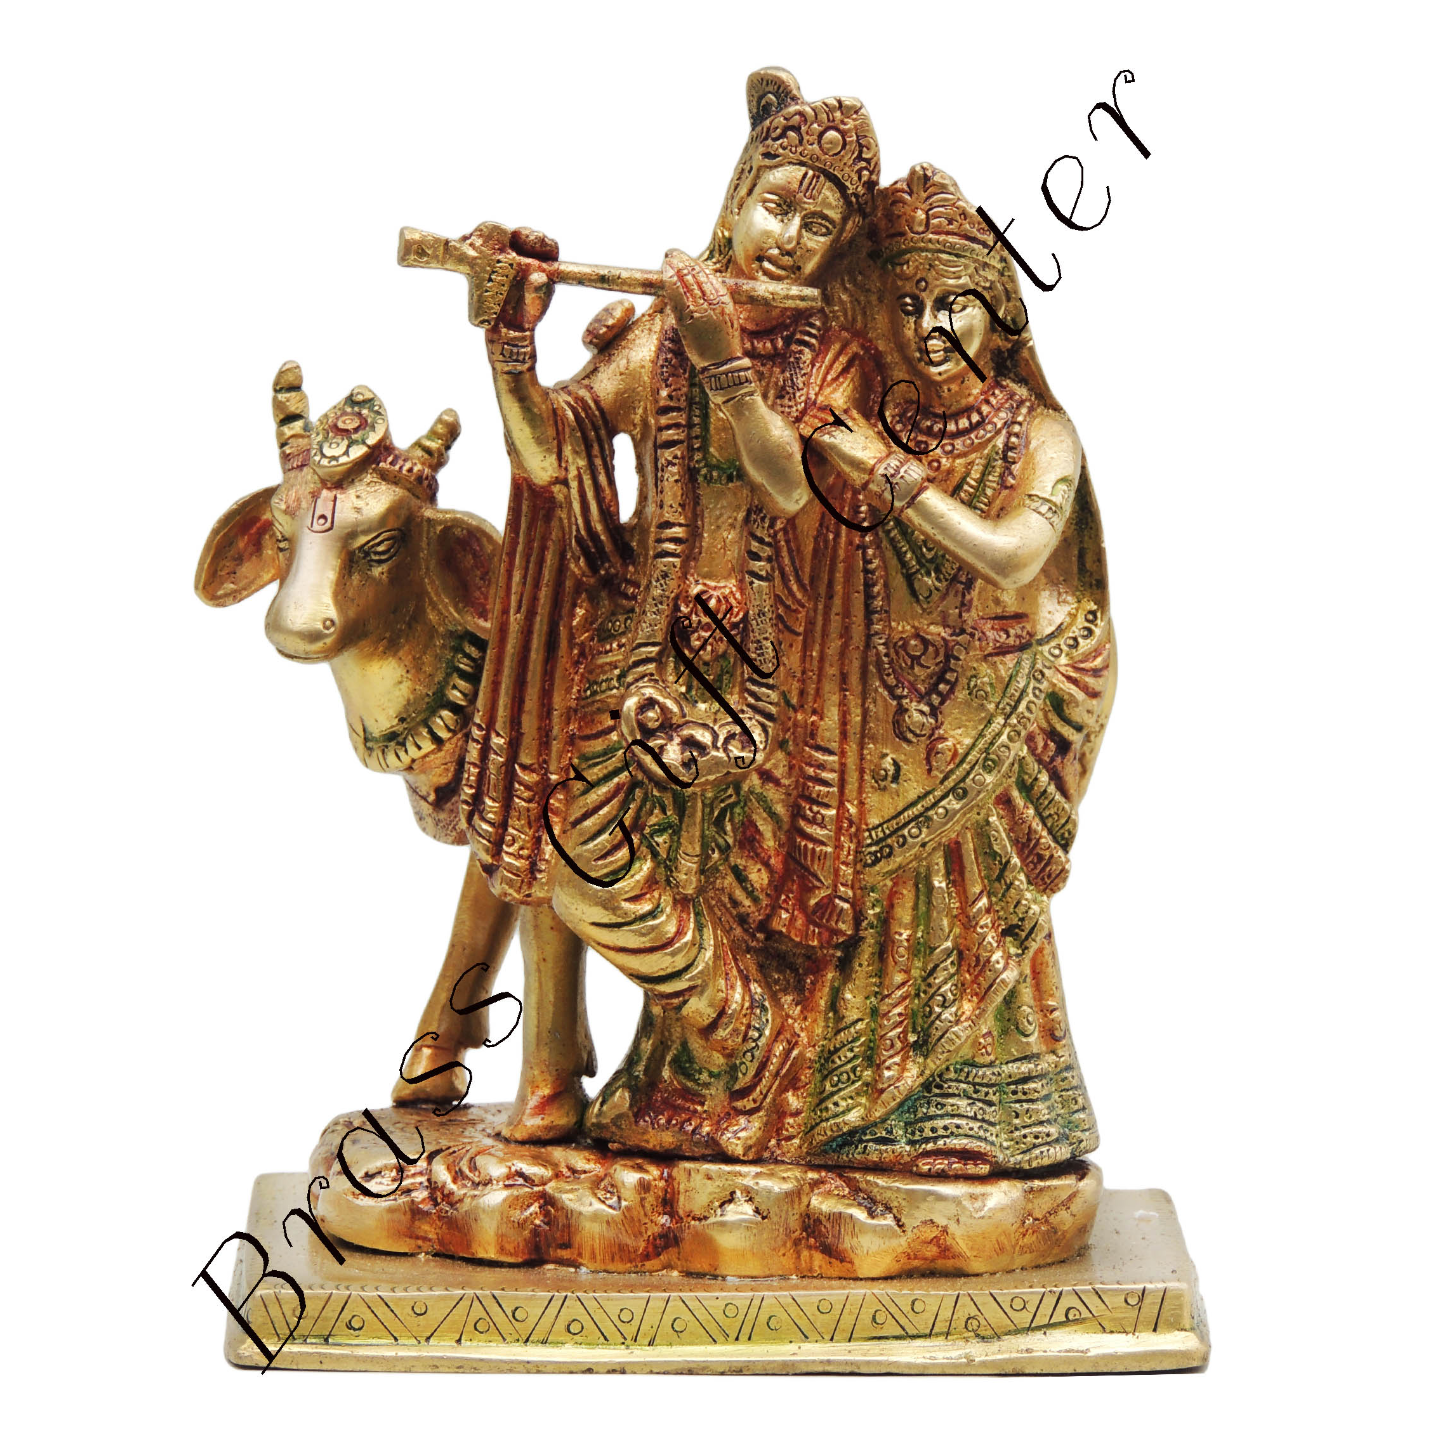 Brass Radha Krishna with Cow Staute Idol Murti in Multicolour lacquer finish - 5.547.5Inch  BS400